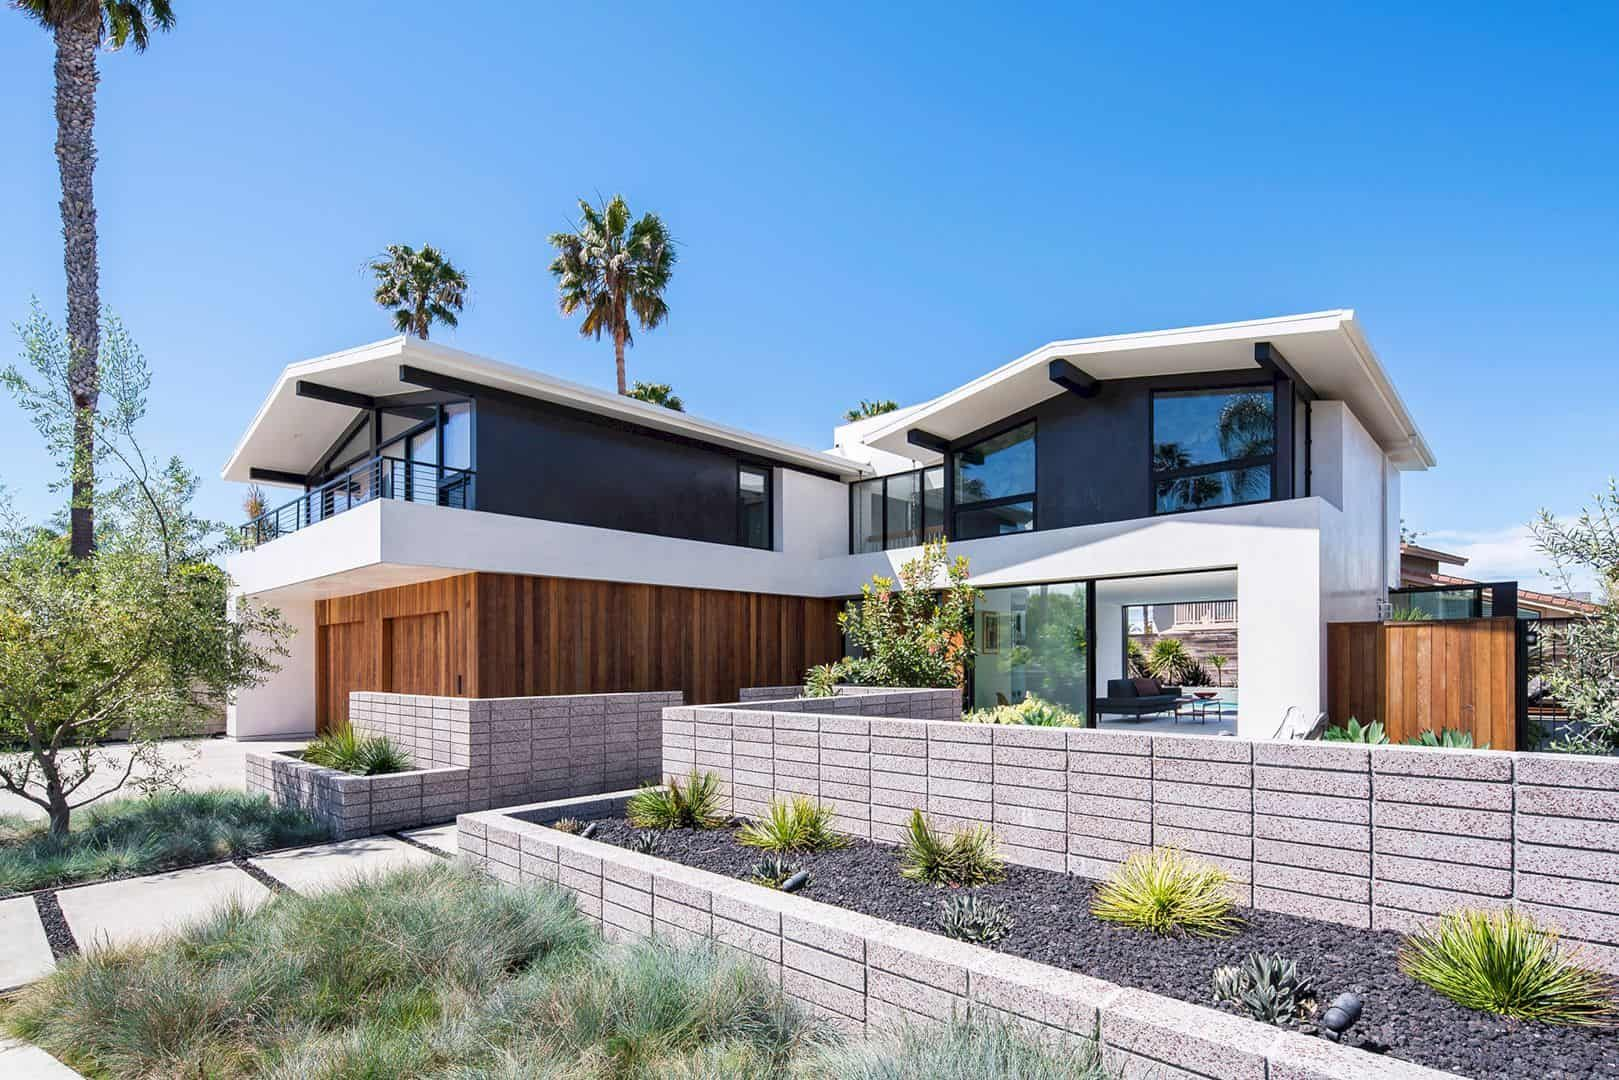 Phelps Residence A Regional Mid Century House With A Two Story Stucco Facade Structure In 2020 Mid Century House California Homes Architecture